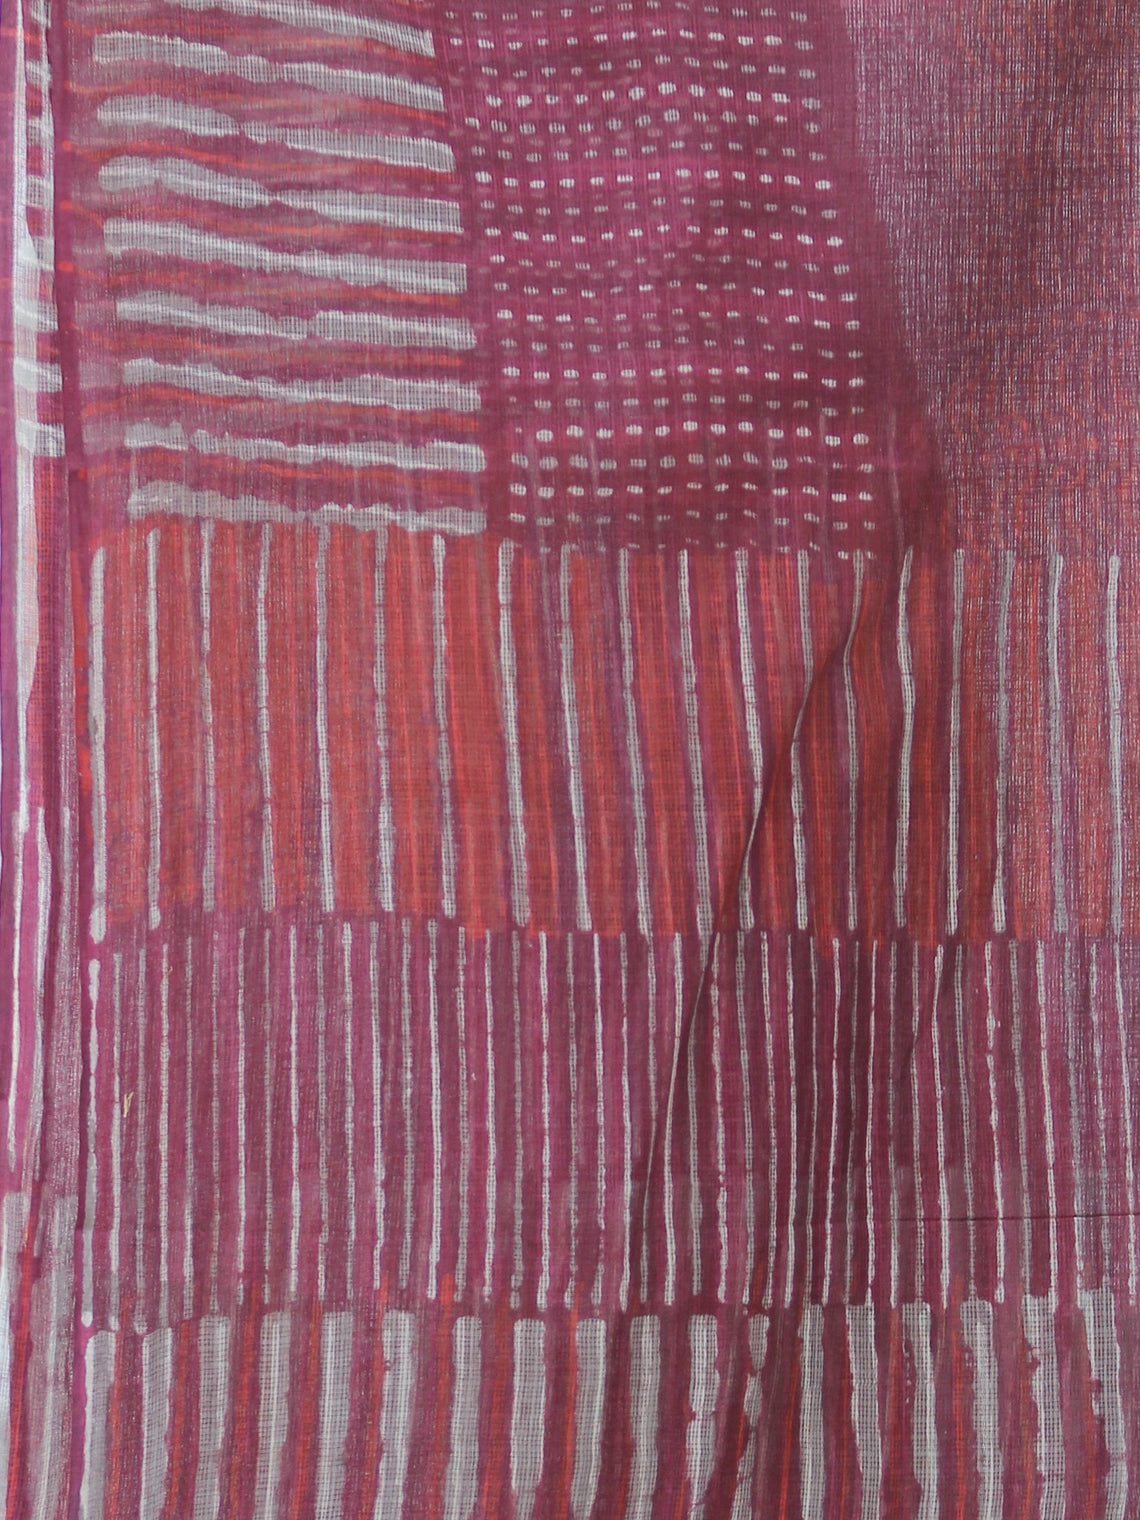 Plum Grey Red Kota Doria Cotton Hand Block Printed Dupatta  - D04170667